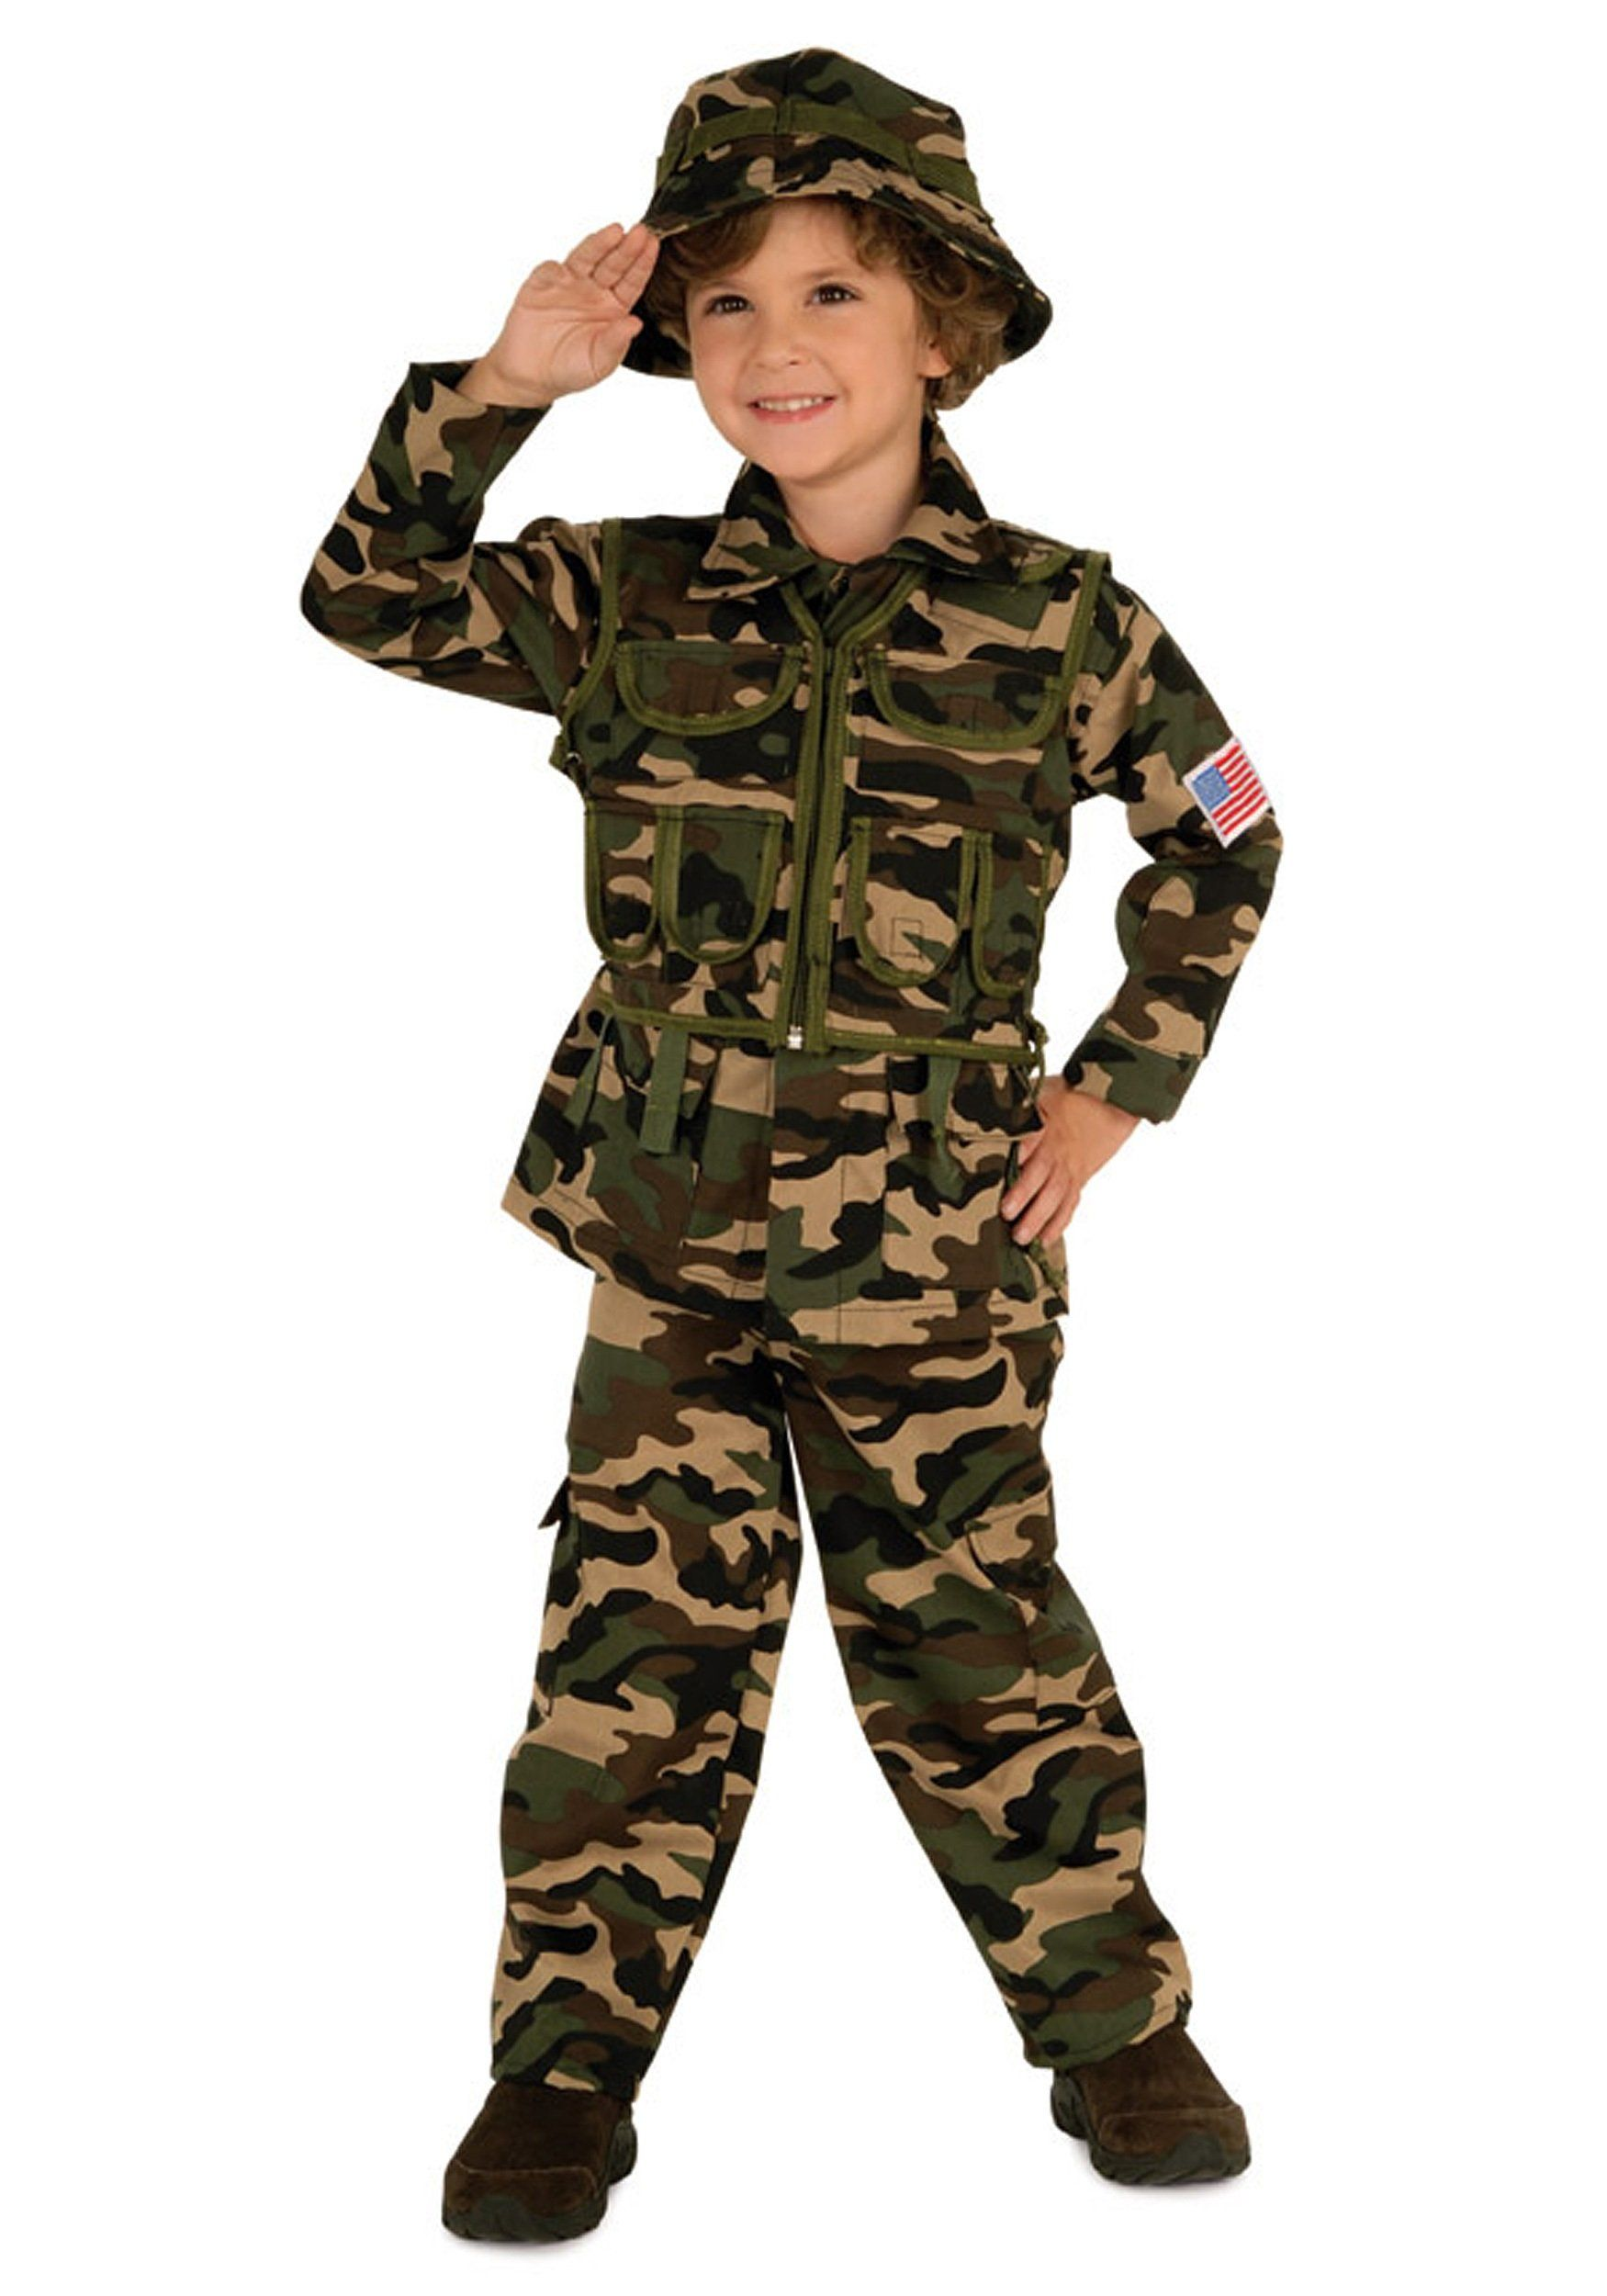 Kids Army Camo Camoflauge Soldier Dress Up Play Fancy Dress Costume Age 4-12